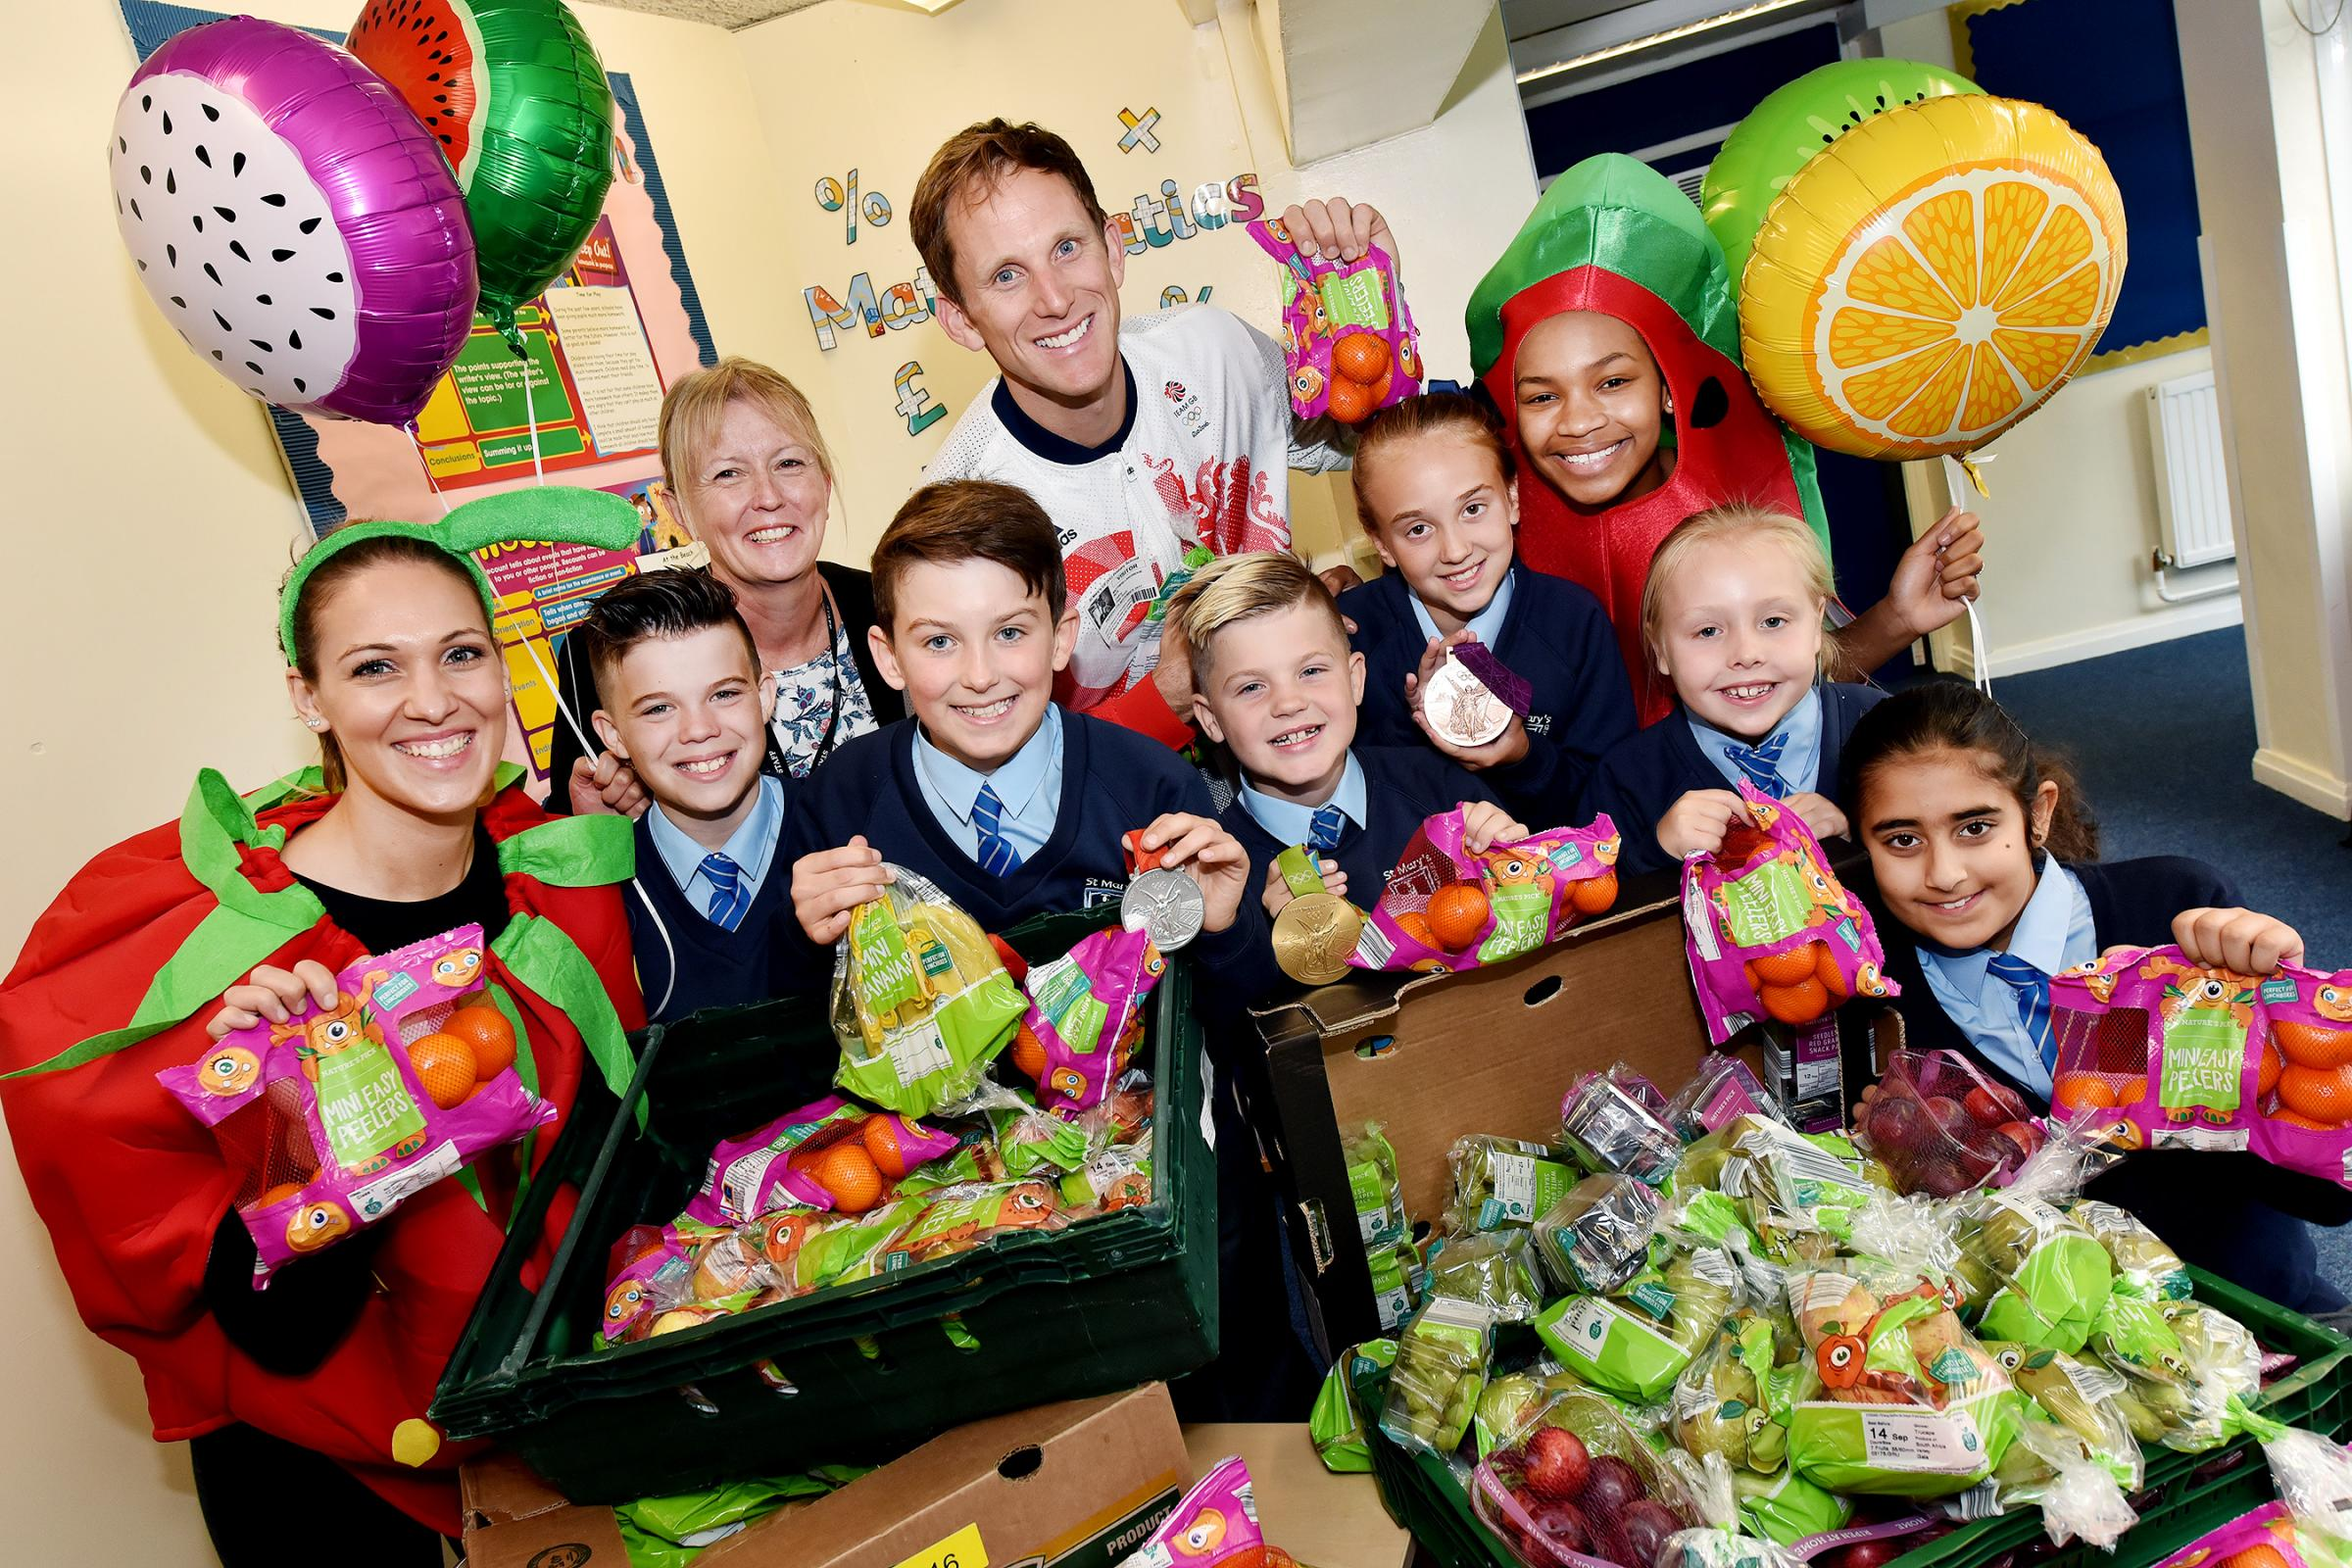 Olympic medallist Matthew Langridge, headteacher Beverley Roberts and children from St Mary's C of E Primary School celebrate Aldi's Super 6 donation